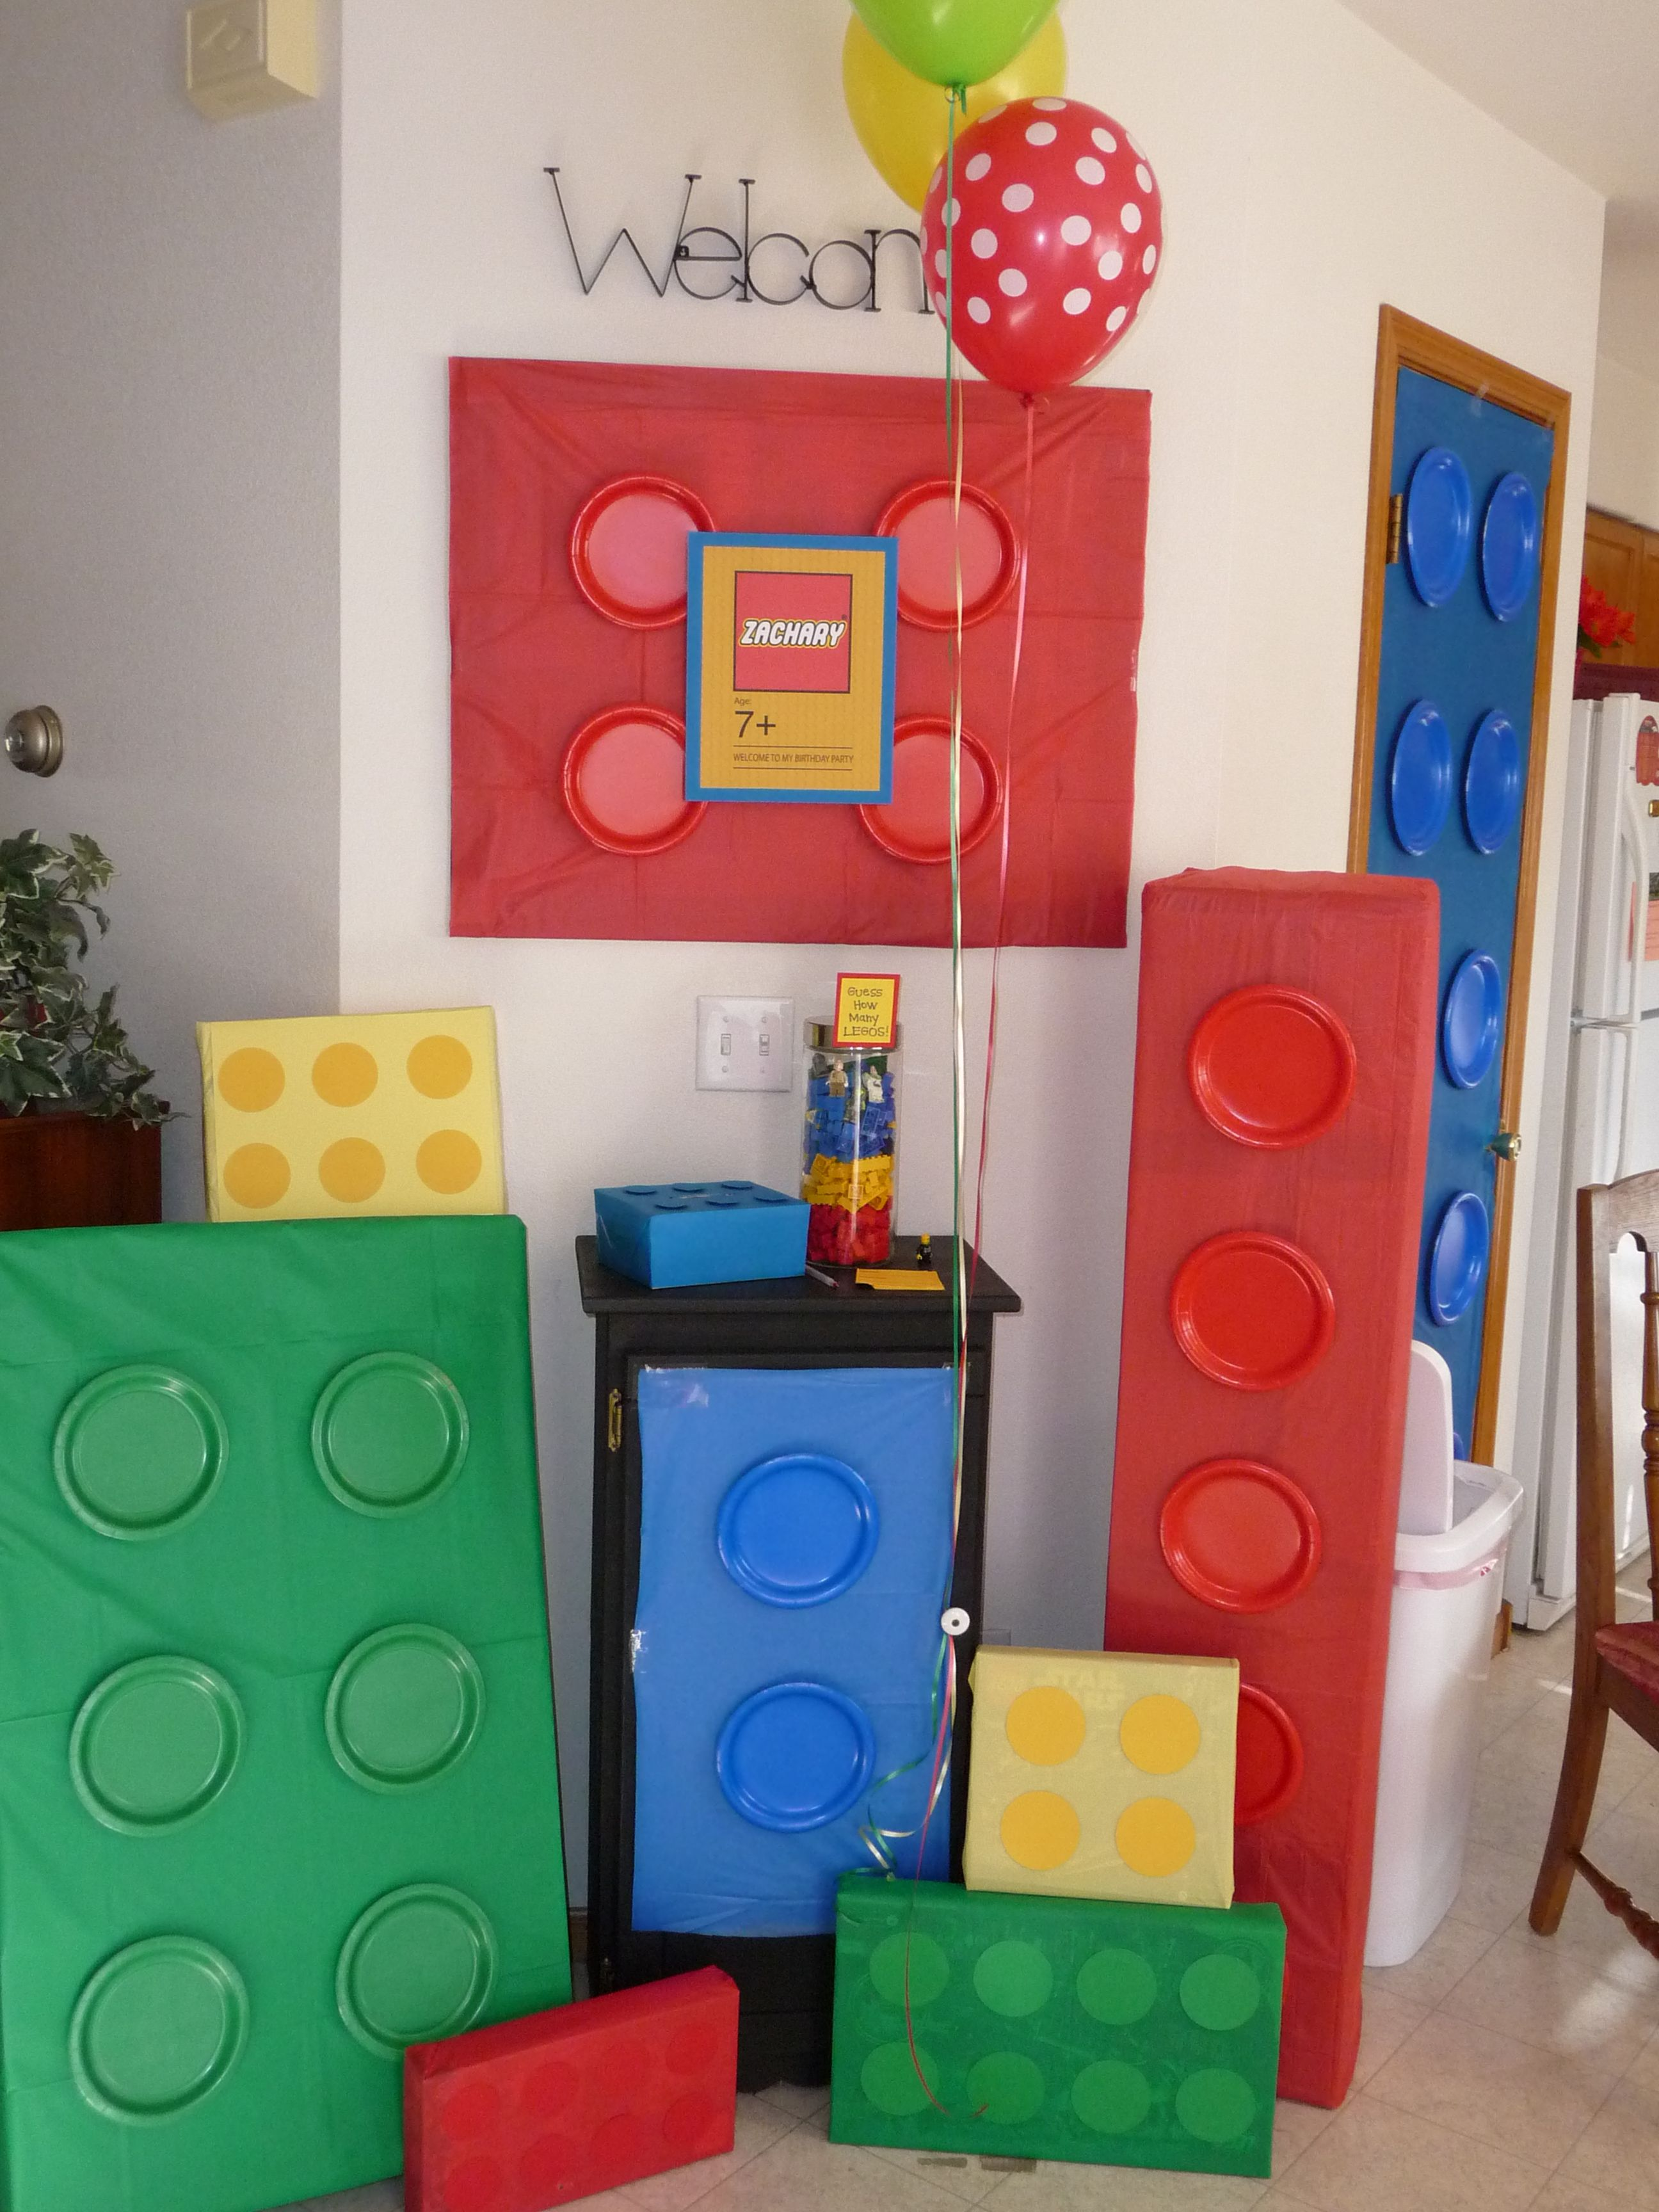 Lego themed party decorations | Kids Let's Party | Pinterest ...